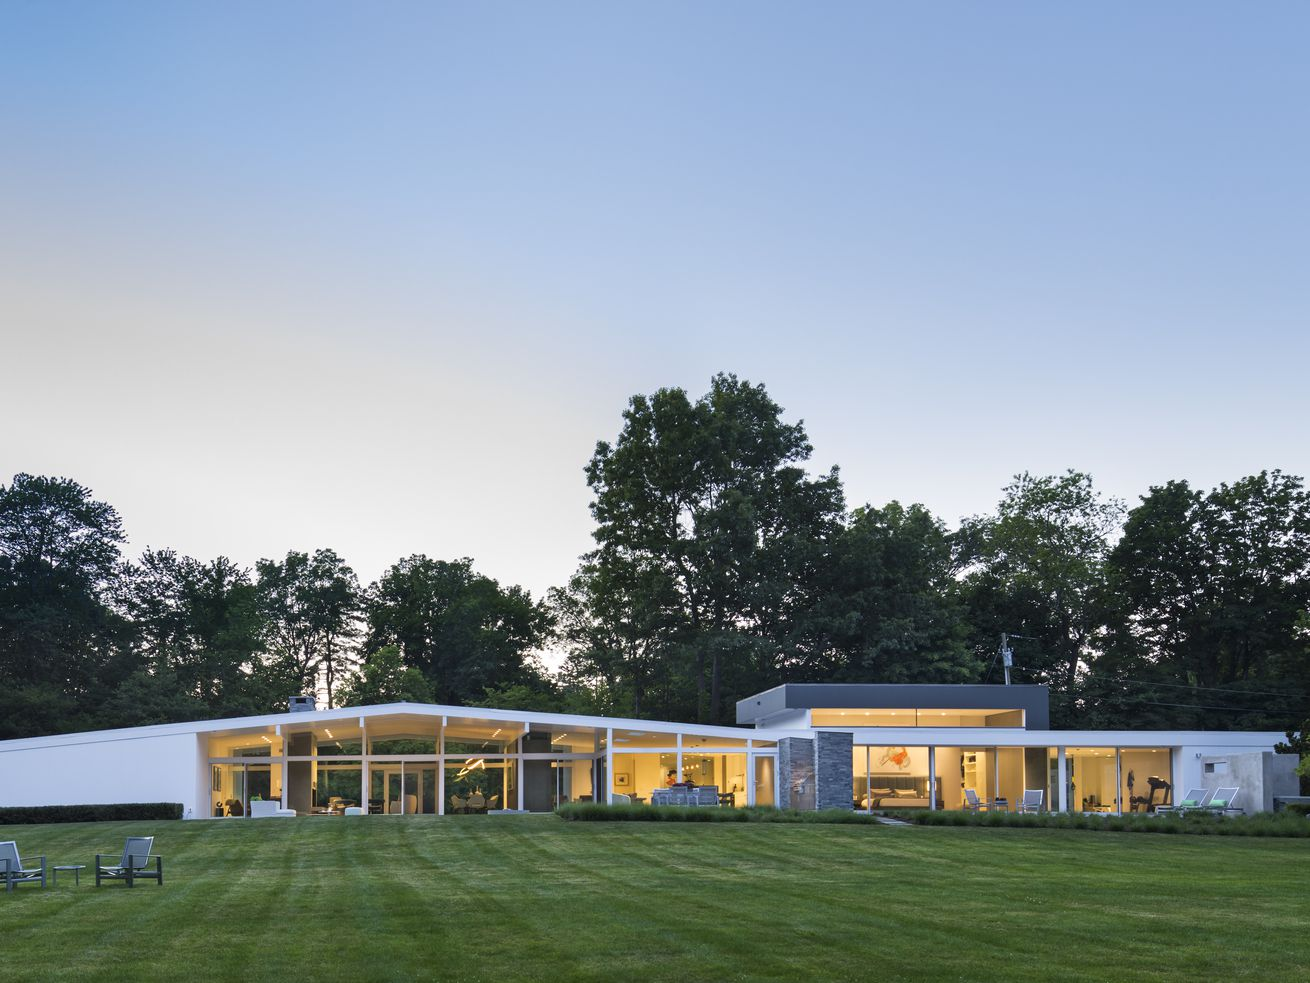 John Black Lee Mid-Century in New Canaan (With a 2,600-Square-Foot Addition) Asks $5M